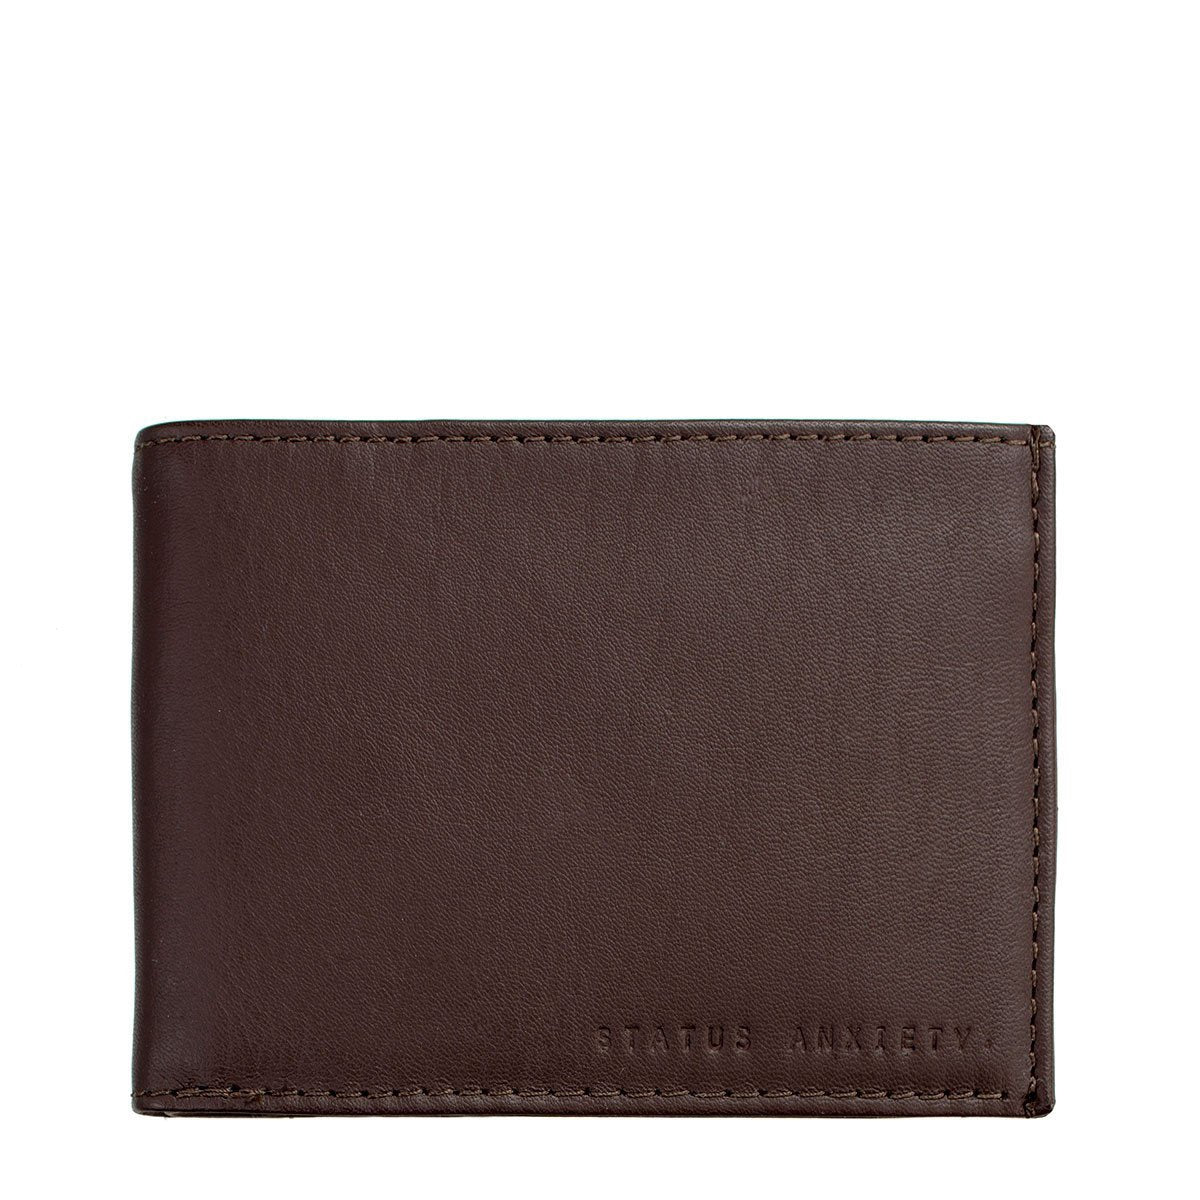 Noah Wallet - Chocolate